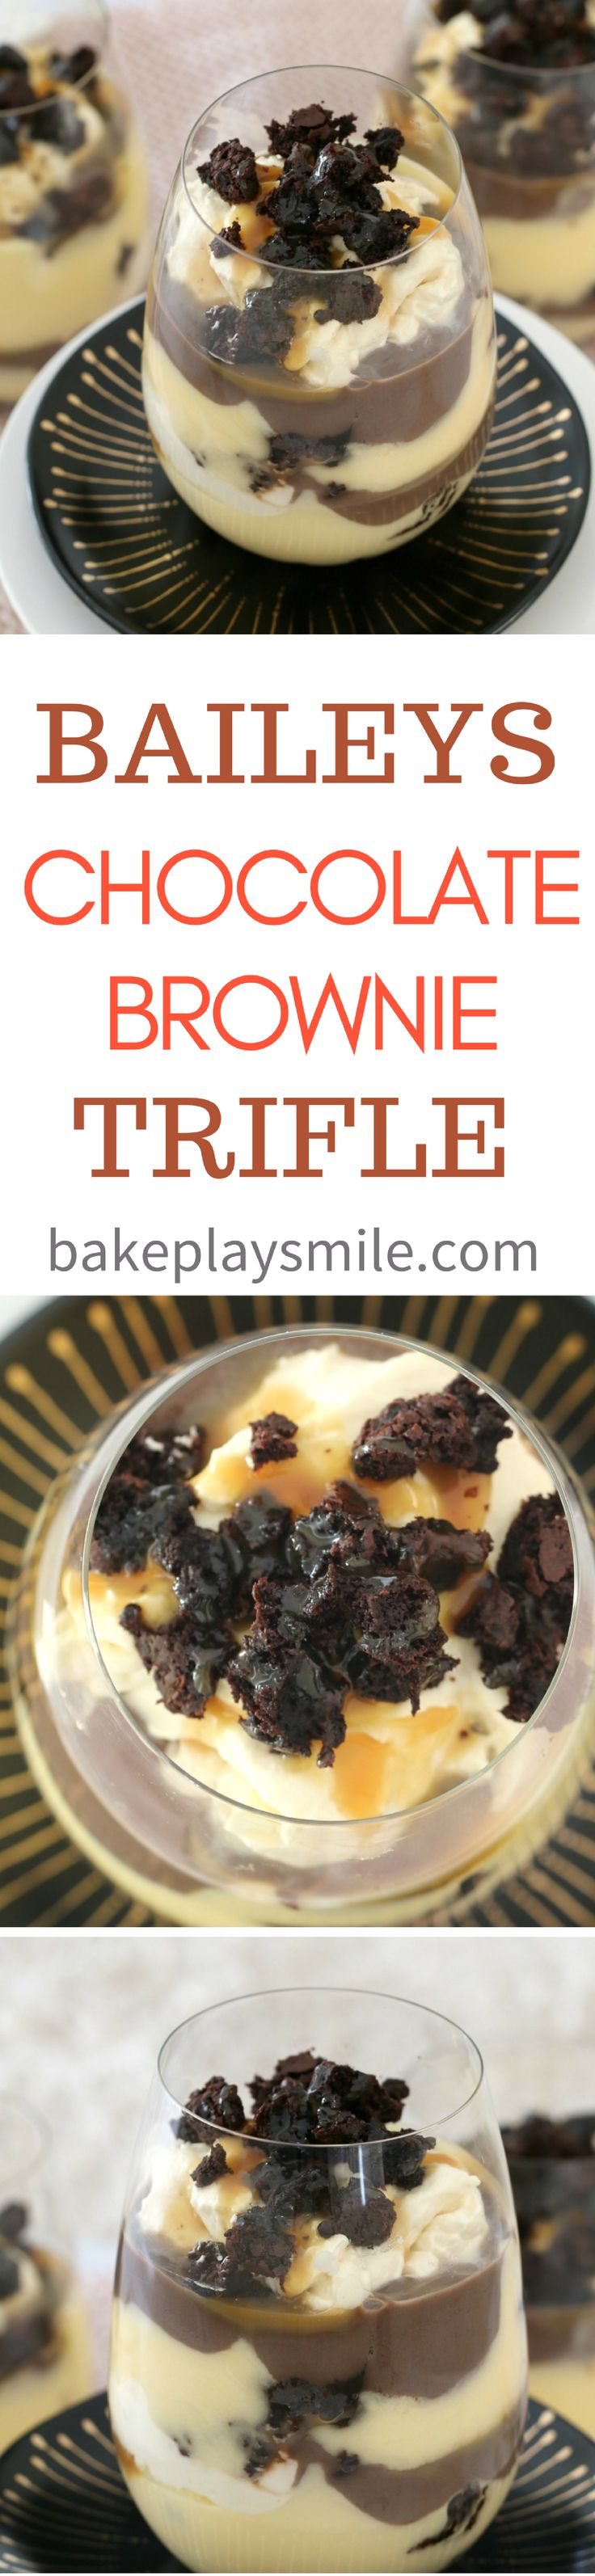 Baileys Chocolate Brownie Trifle  The most decadent layered Baileys Chocolate Brownie Trifle – filled with rich chocolate brownie, vanilla custard, whipped cream, Baileys Irish Cream, chocolate custard and salted caramel sauce… this one is for the true chocoholics!!   #chocolate #brownie #trifle #baileys